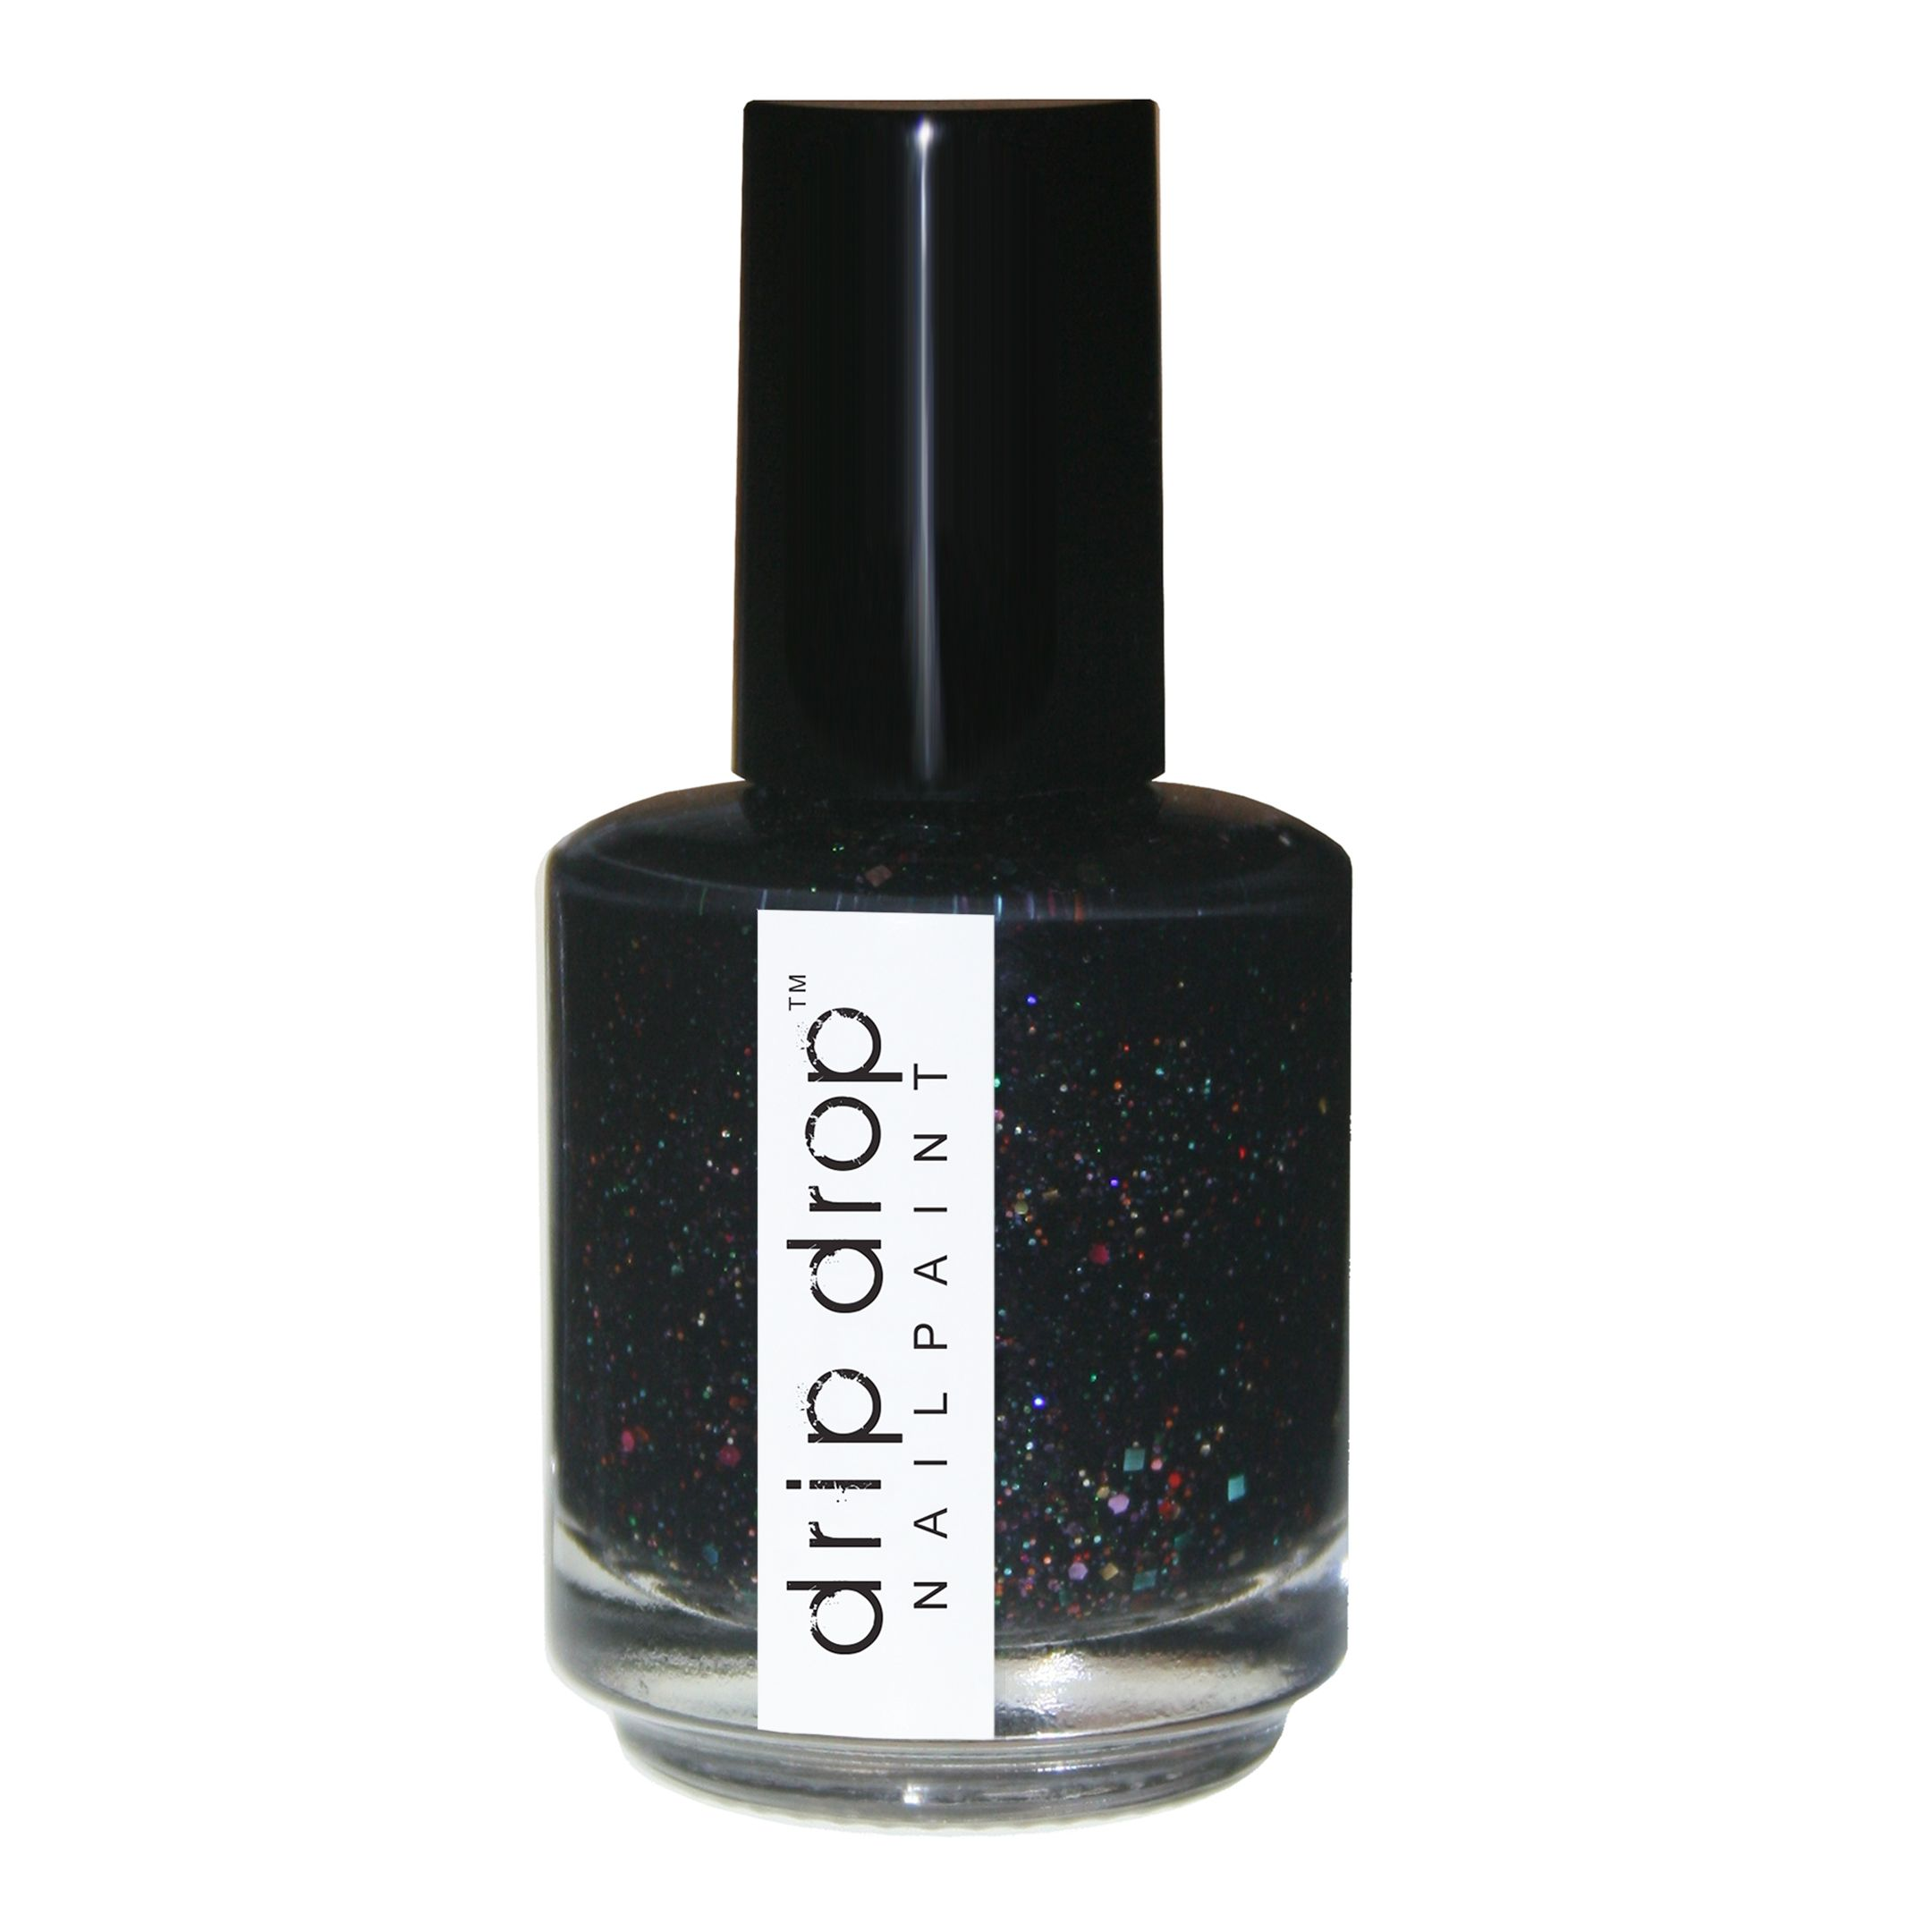 'hungover the rainbow'is a black glitter crelly with holo, rainbow colored glitters in various ...